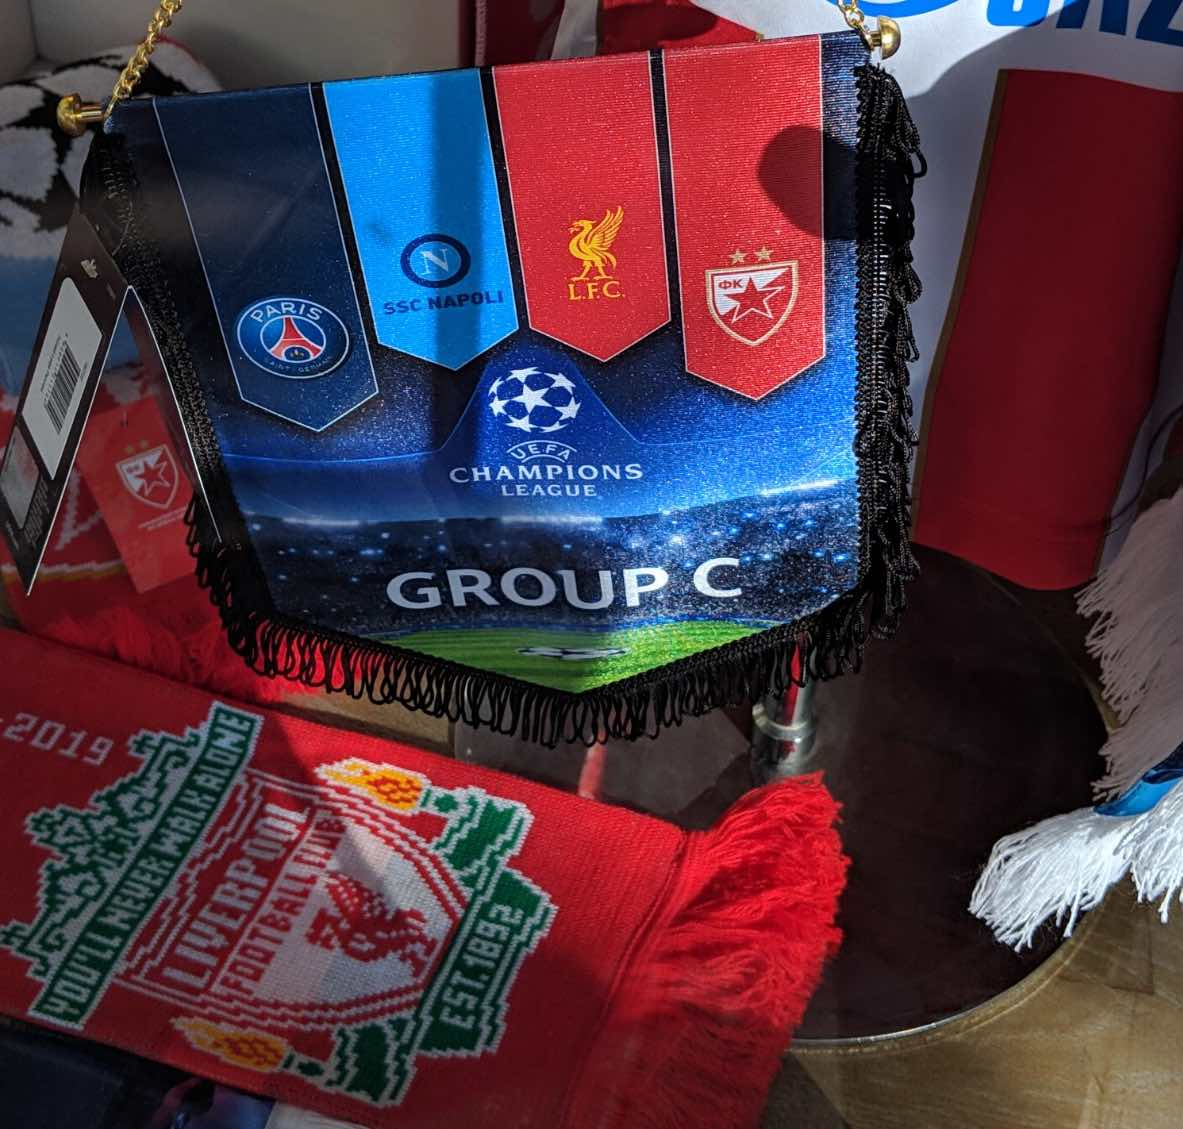 Liverpool champions league group c